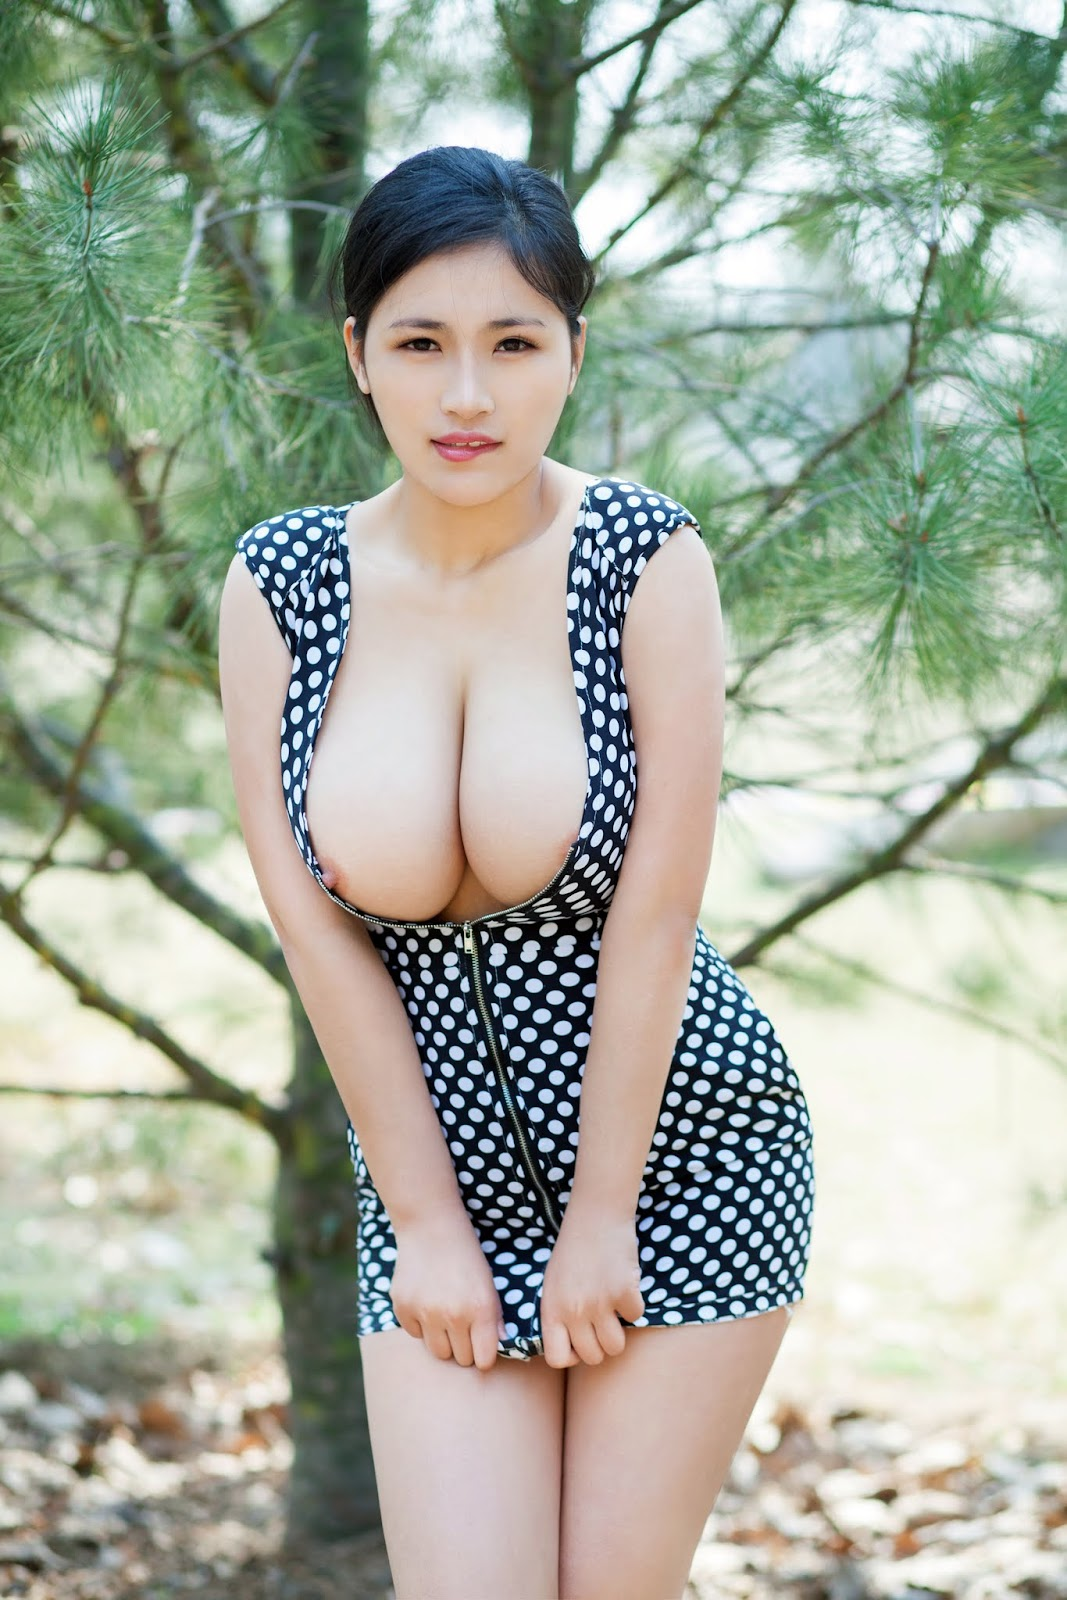 %25C2%25BC %252B 30 - Hot Photo TUIGIRL NO.57 Nude